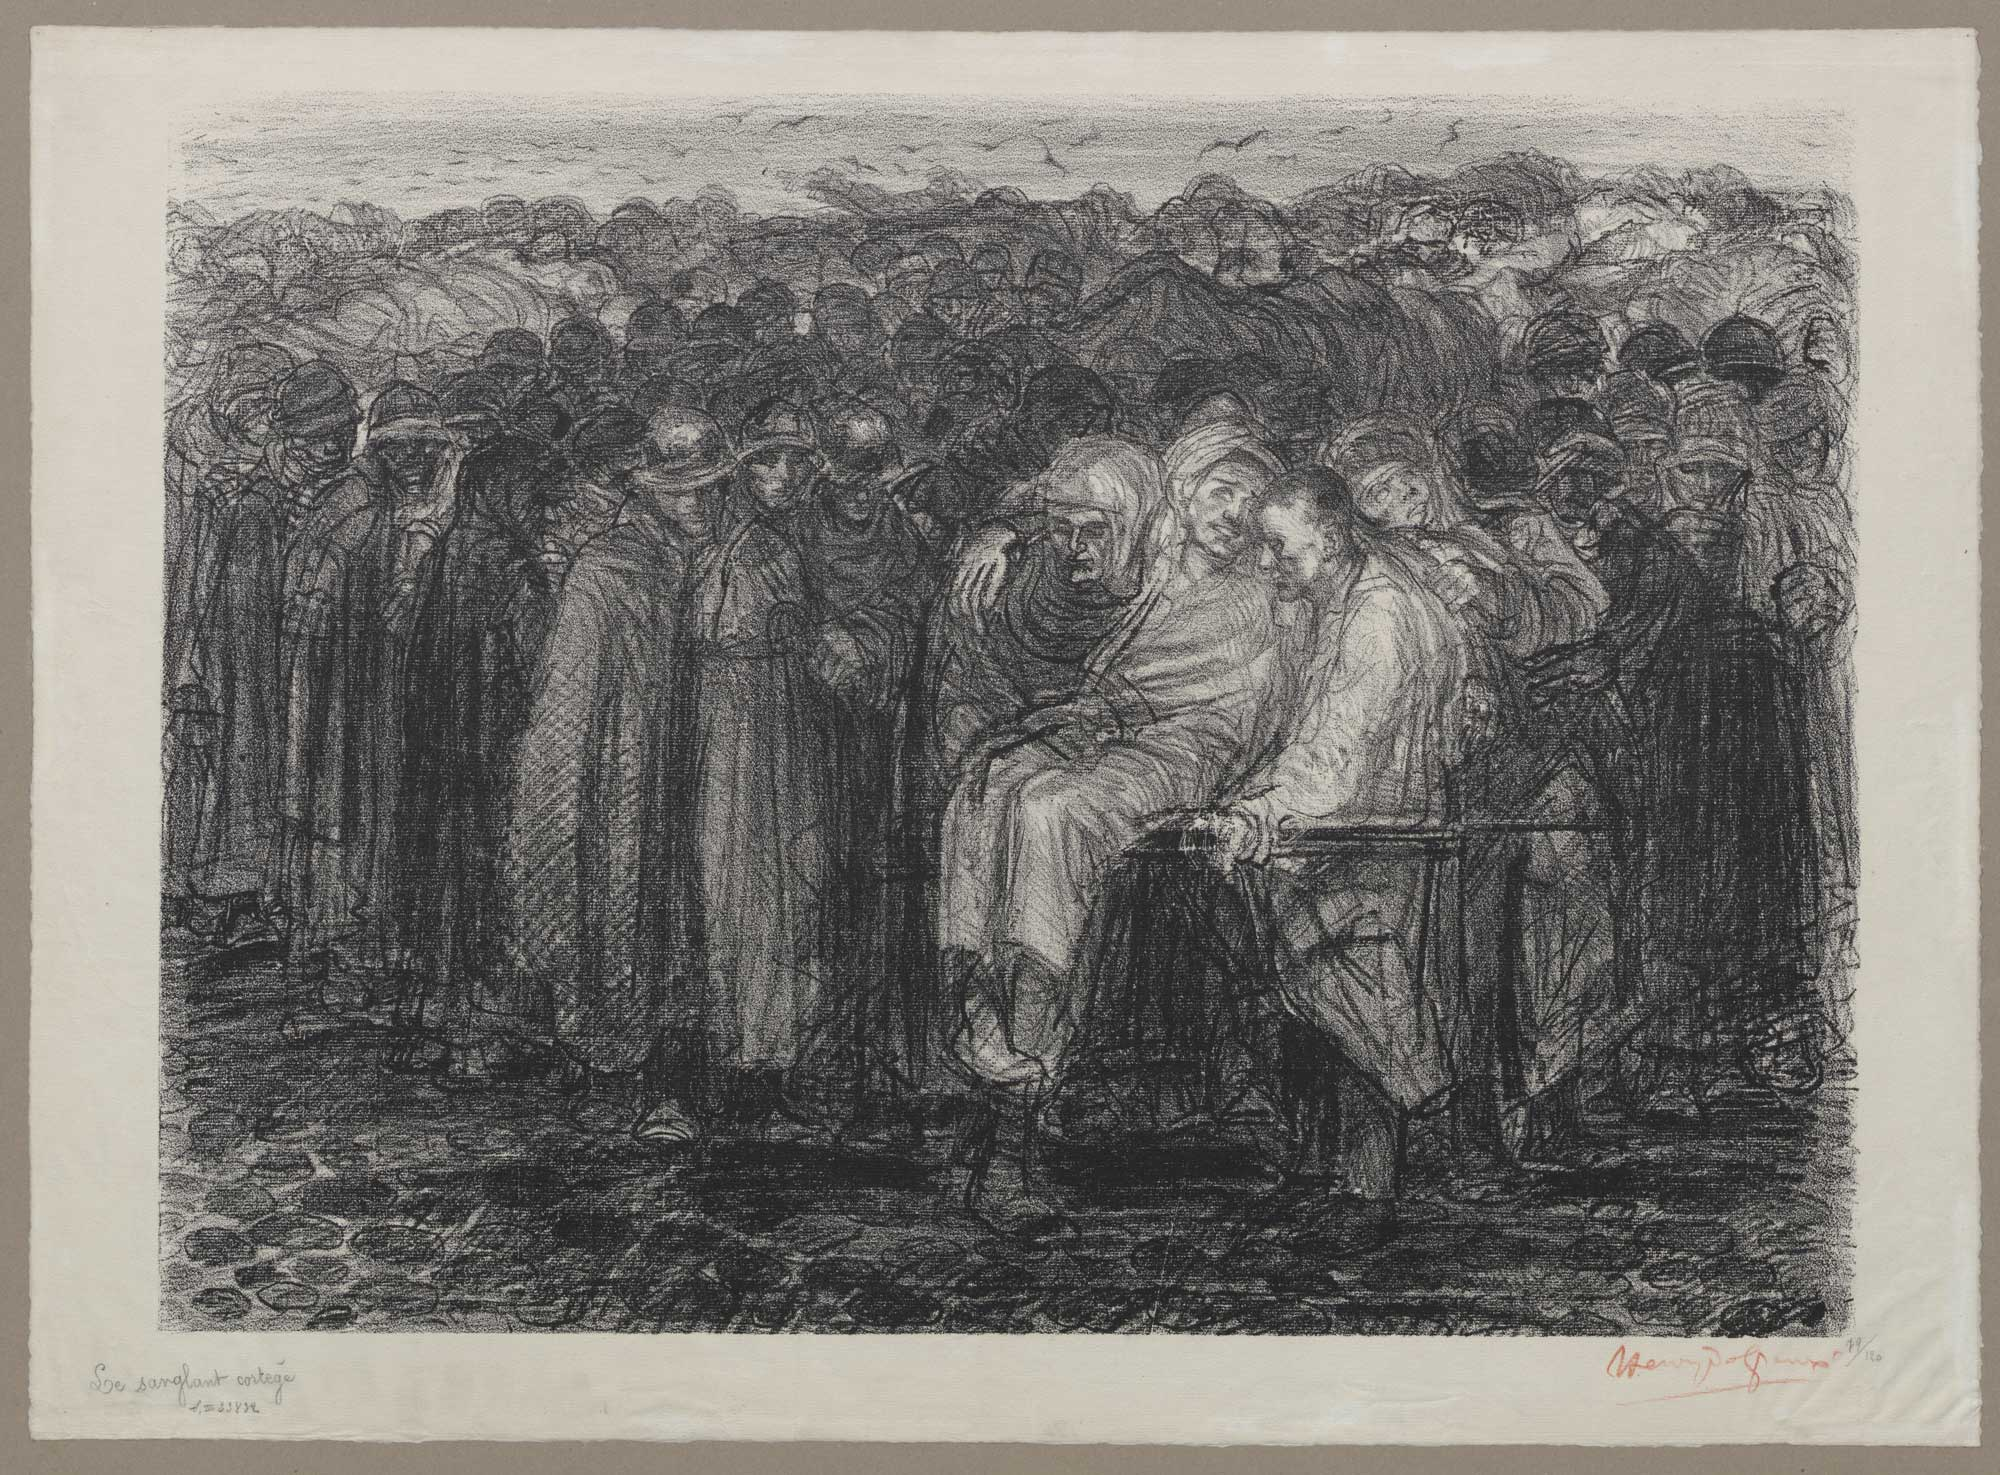 Lithograph depicting a group of soldiers and a wounded man being carried on a stretcher, by Belgian symbolist painter and sculptor Henry de Groux (1886-1930).